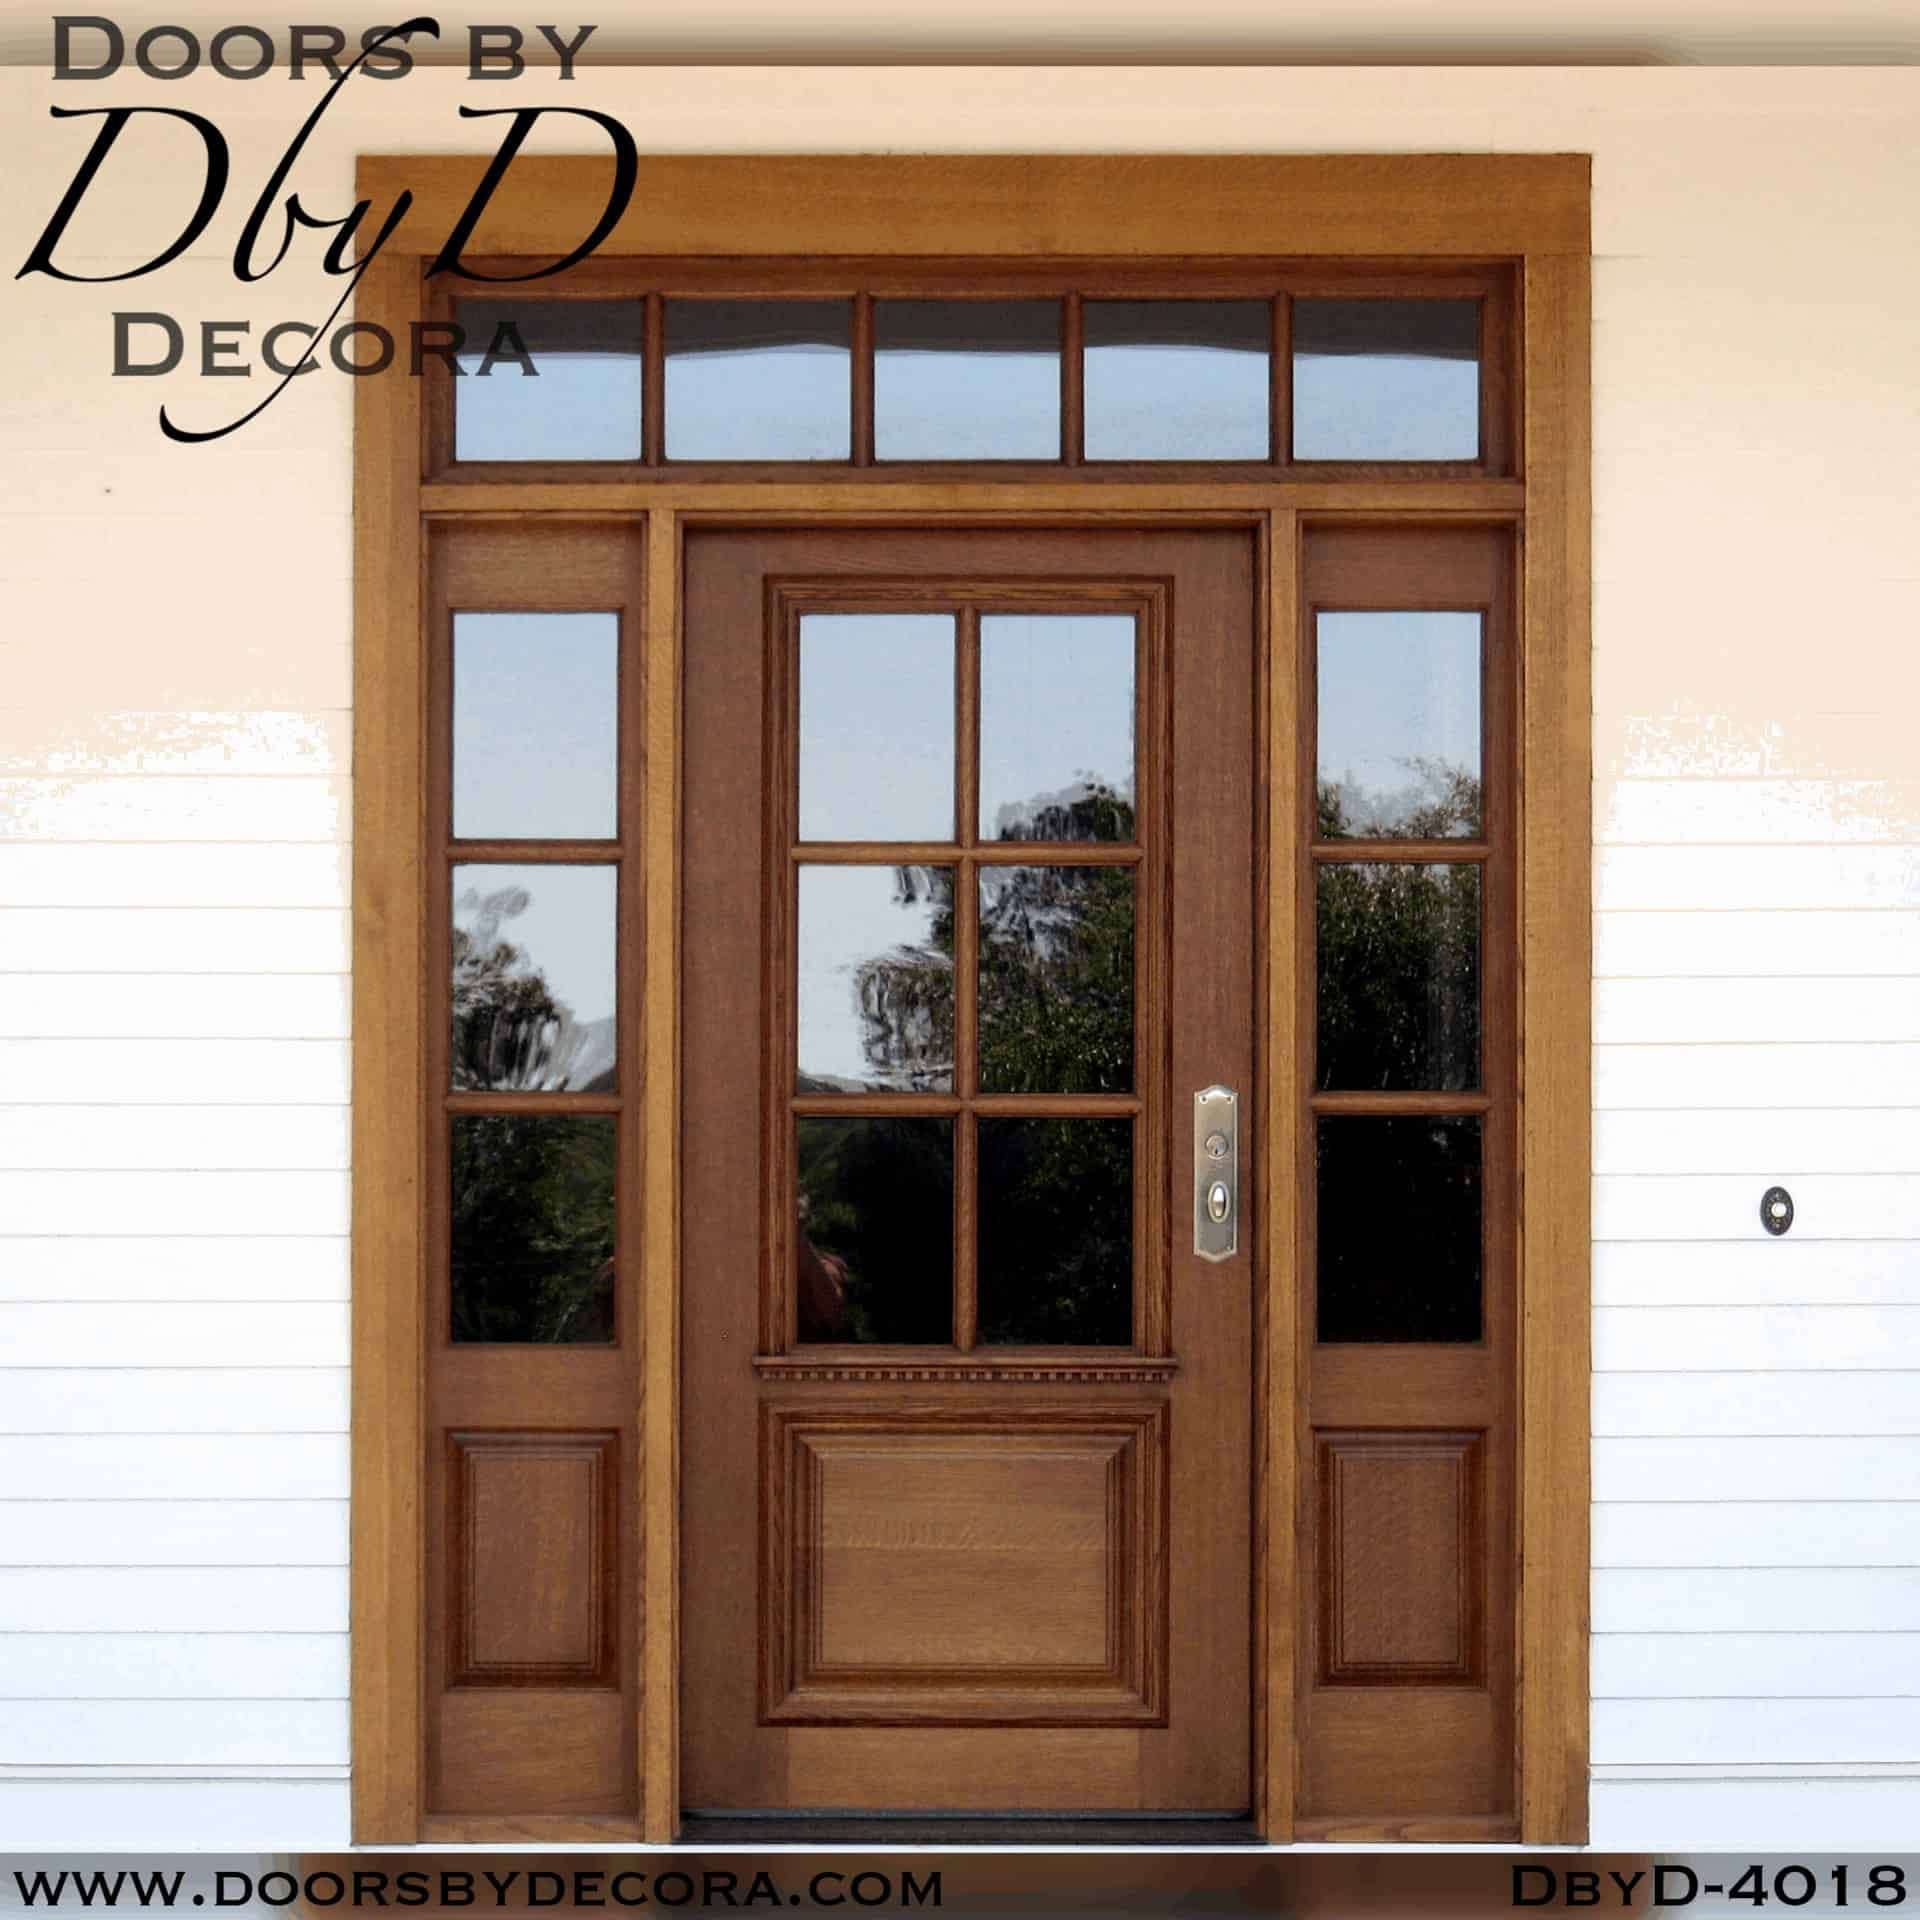 Custom Craftsman Door Side Lites And Transom Entry Doors By Decora